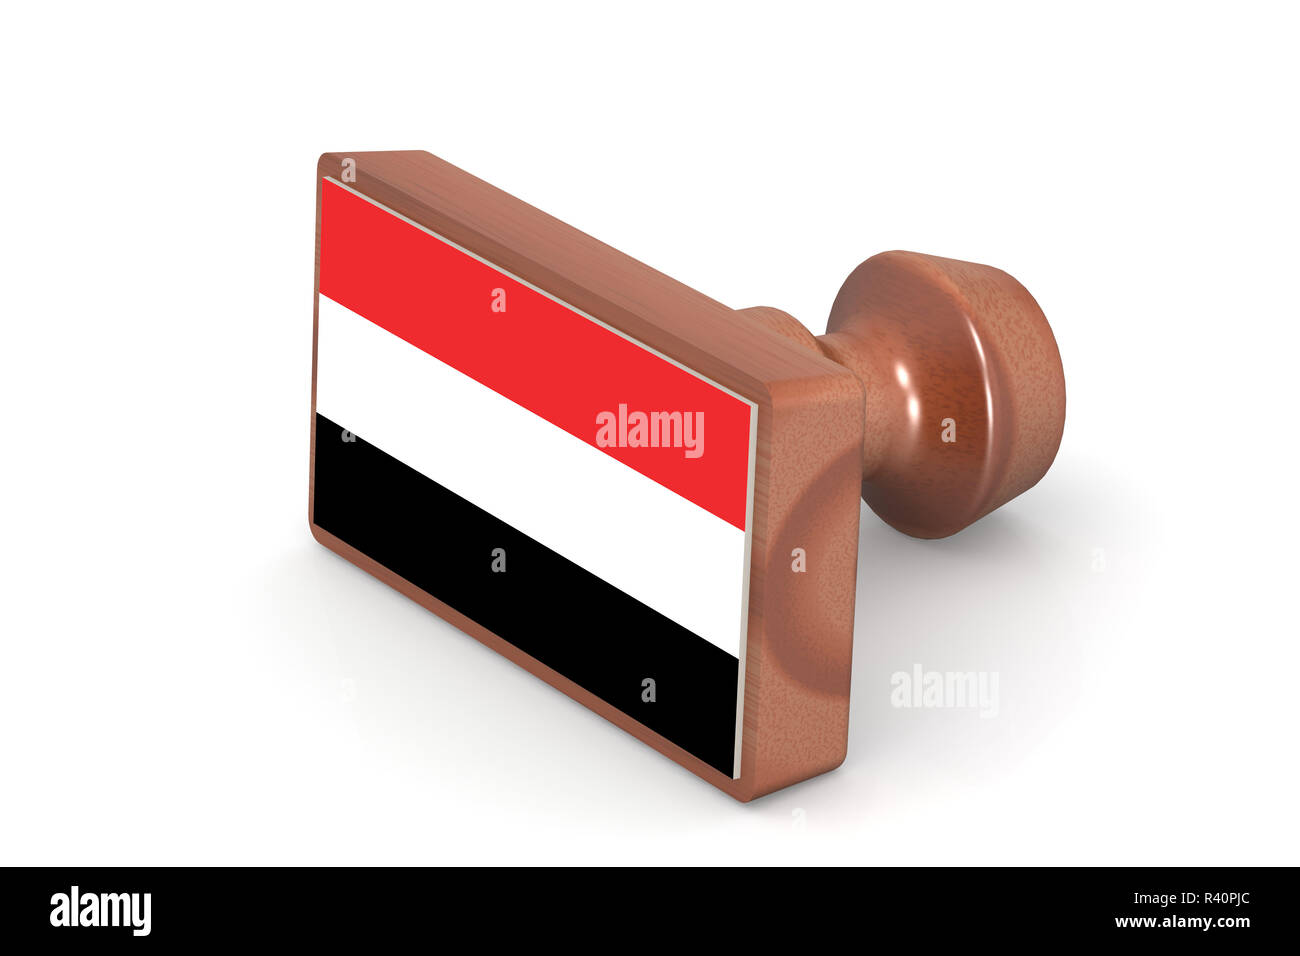 Wooden stamp with Yemen flag - Stock Image